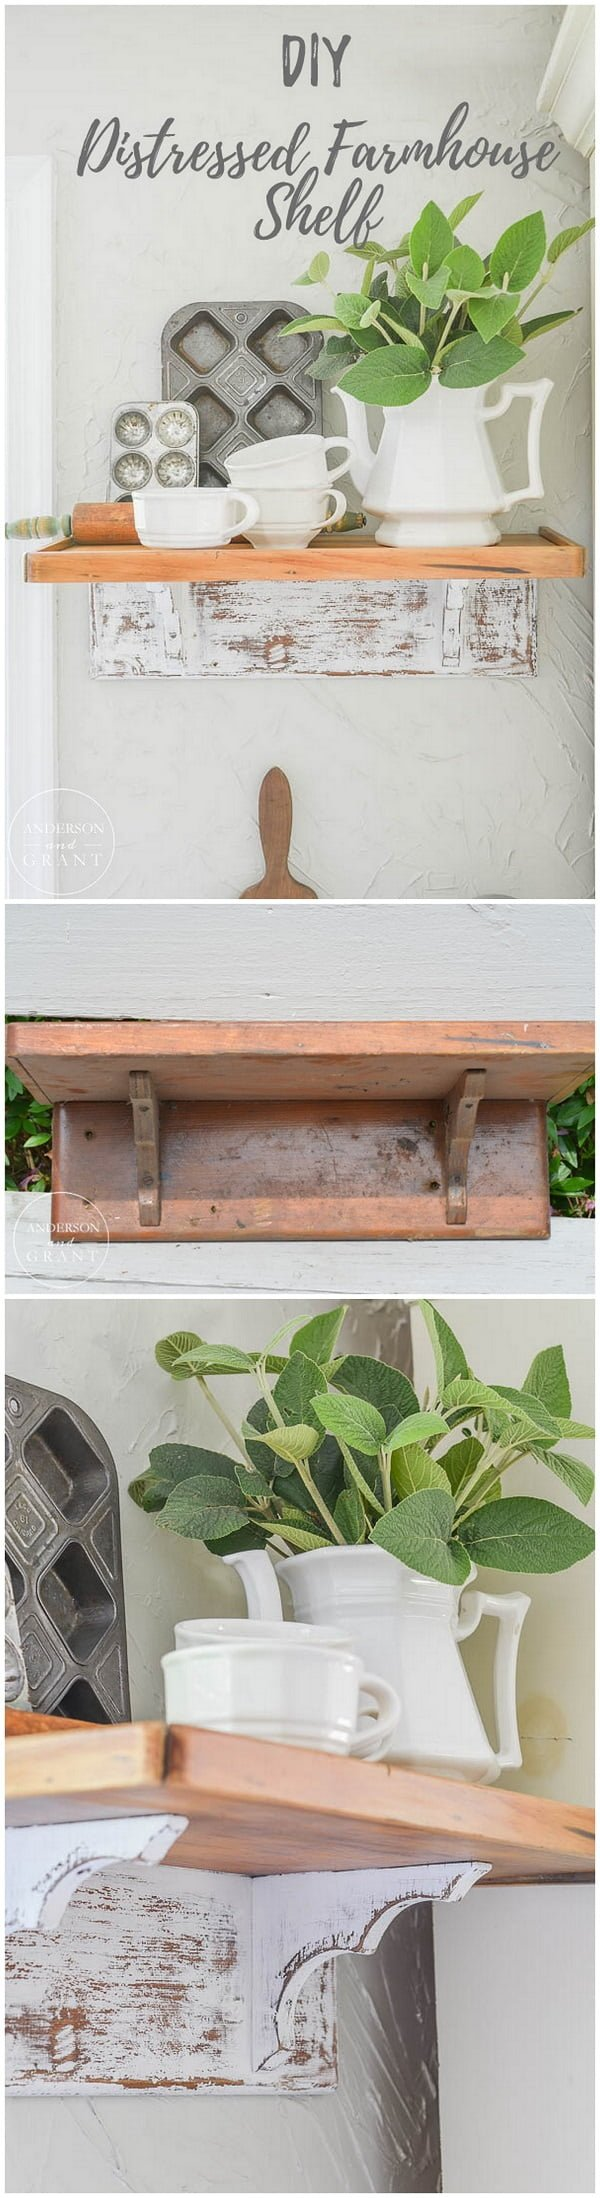 Check out this easy idea on how to make a #DIY distressed #farmhouse shelf #homedecor #crafts #project